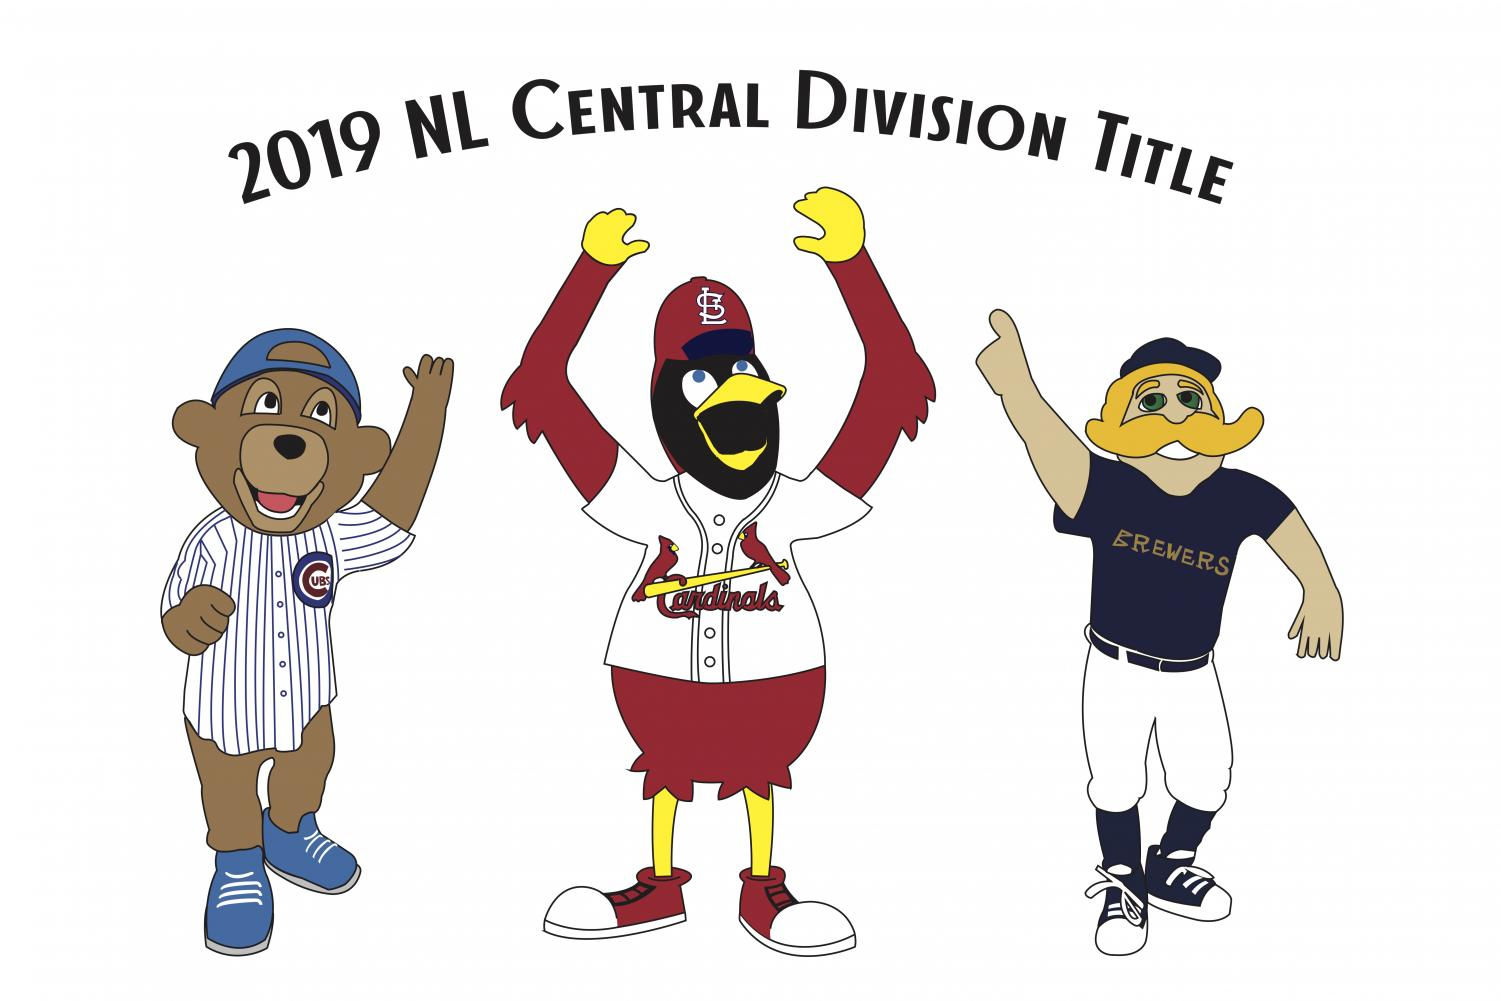 The Cardinals' dominance for the past decade and a half led fans to both surprise and disappointment when the team missed the playoffs for the third consecutive season in 2018. Yeah, 88 wins leaves a lot to be desired.